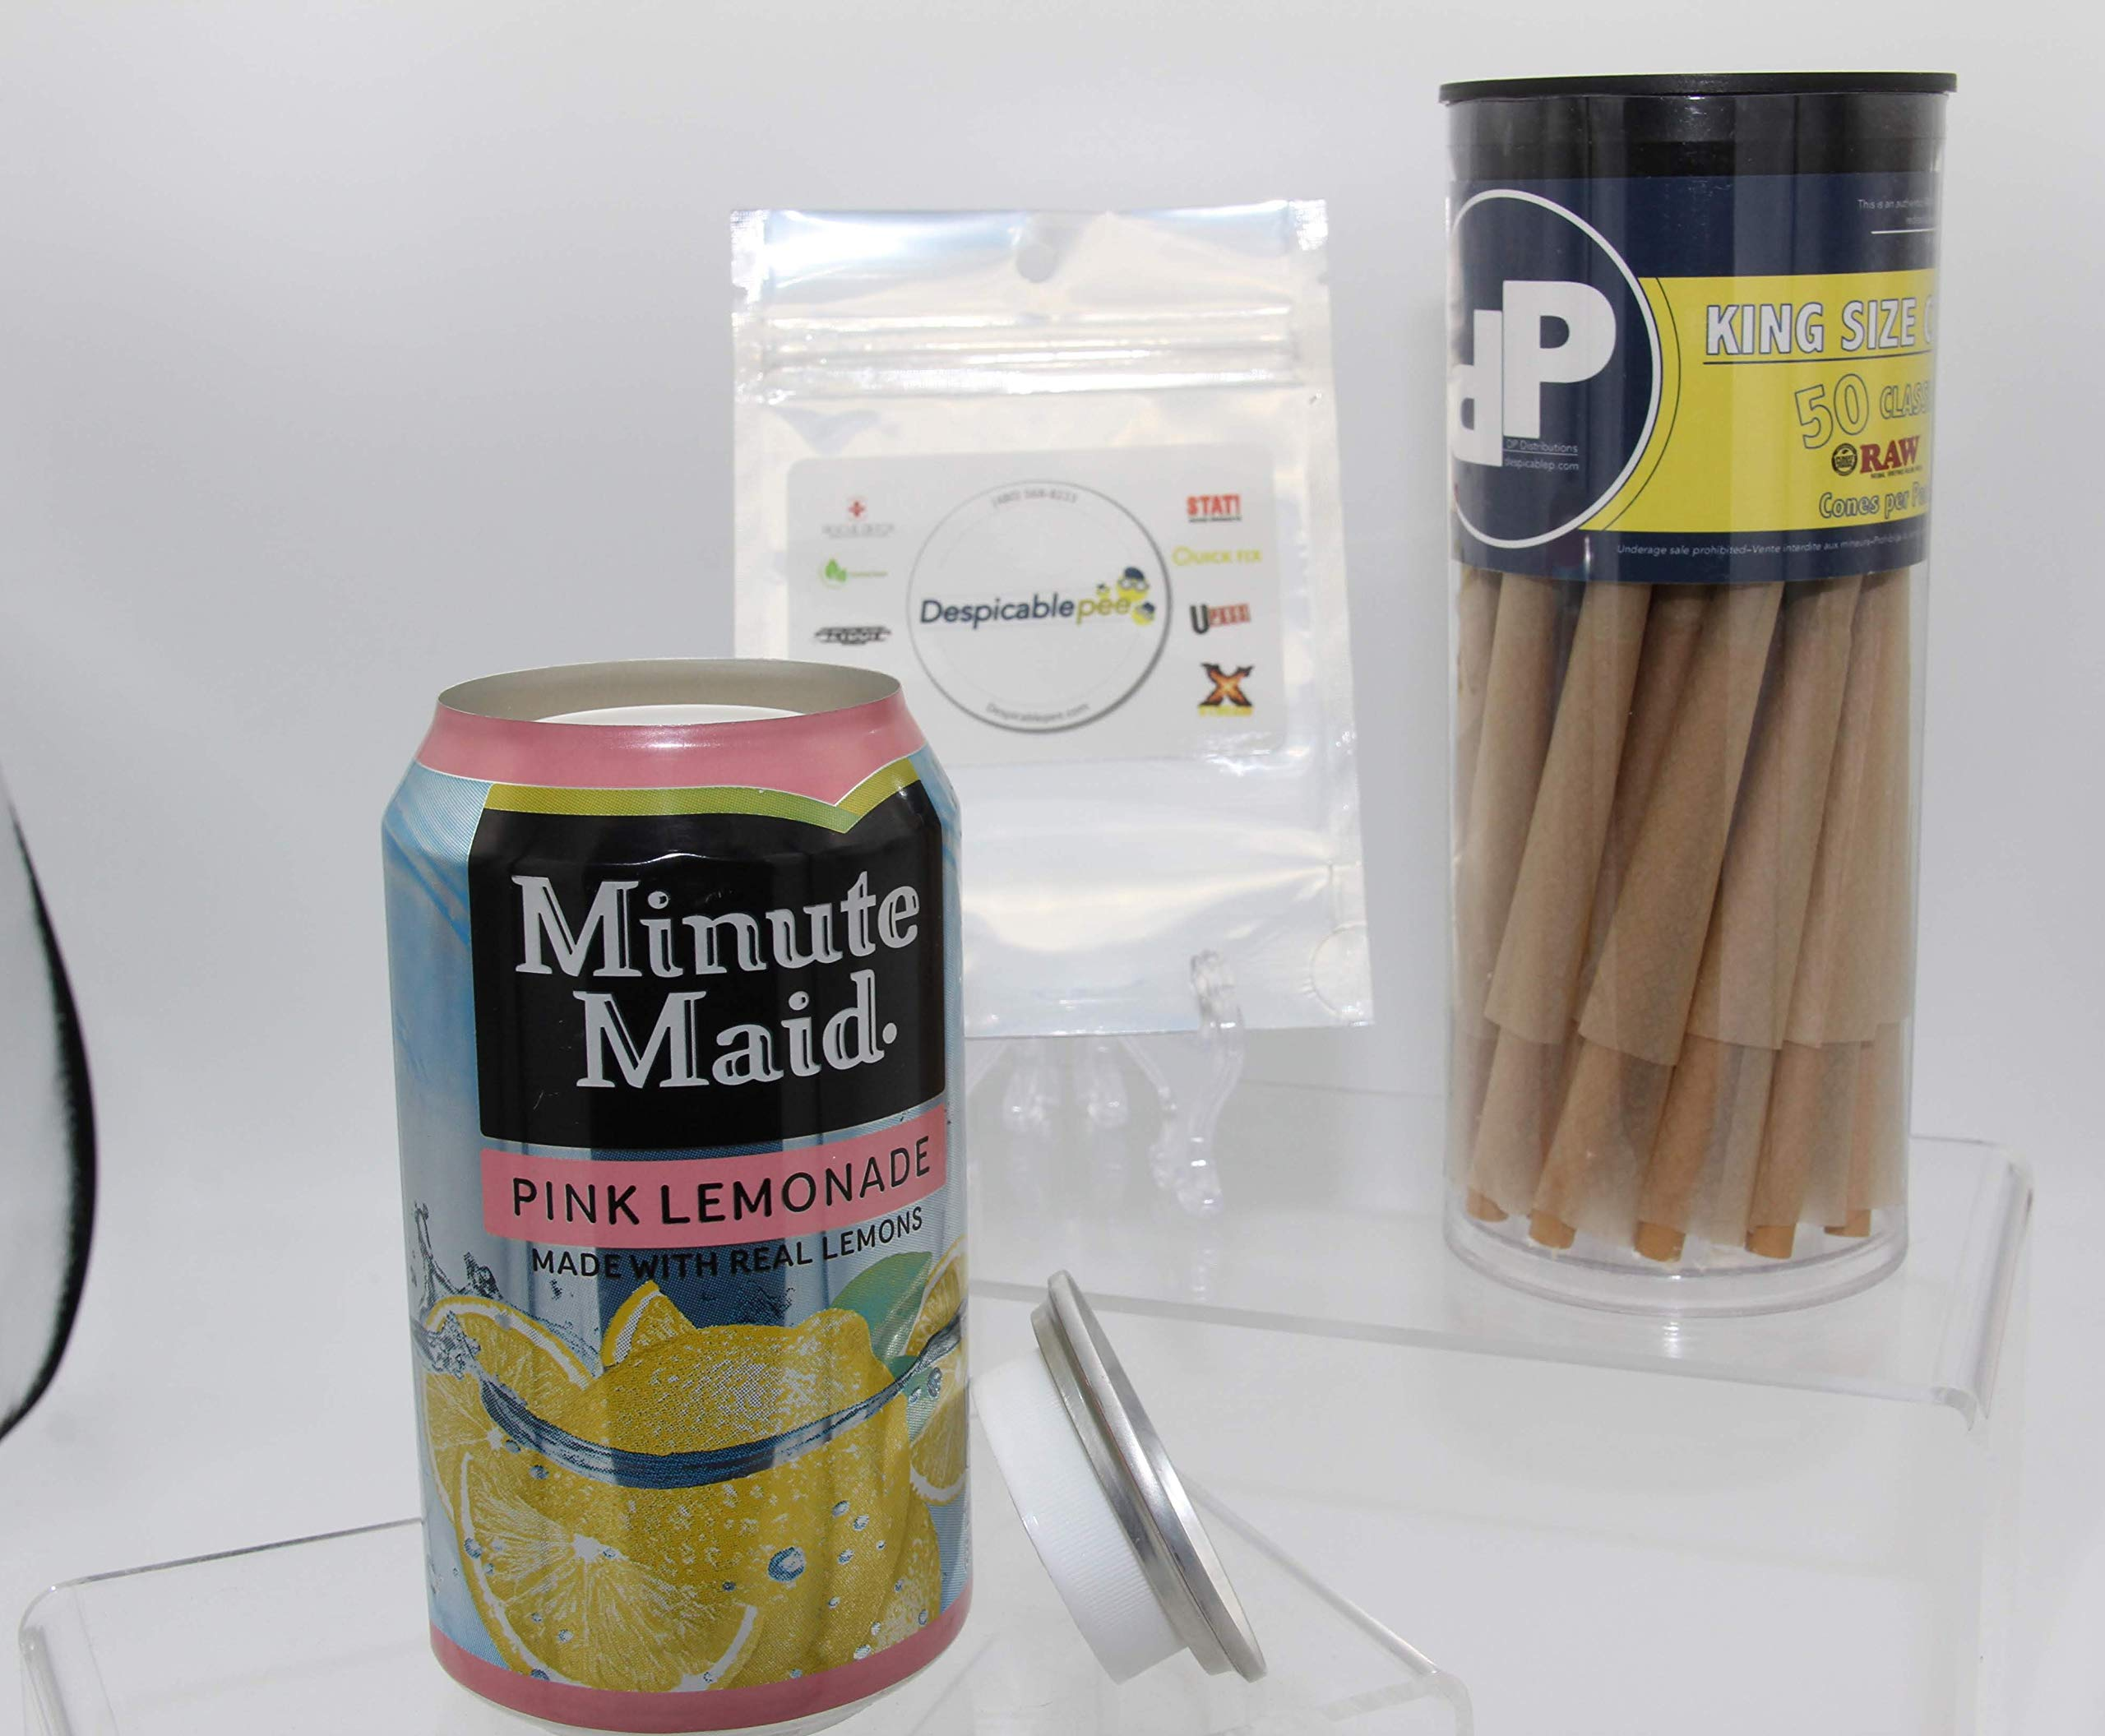 Minute Maid Pink Lemonade Can Diversion Safe, 50ct DP Toob & Sac by DP Distributions